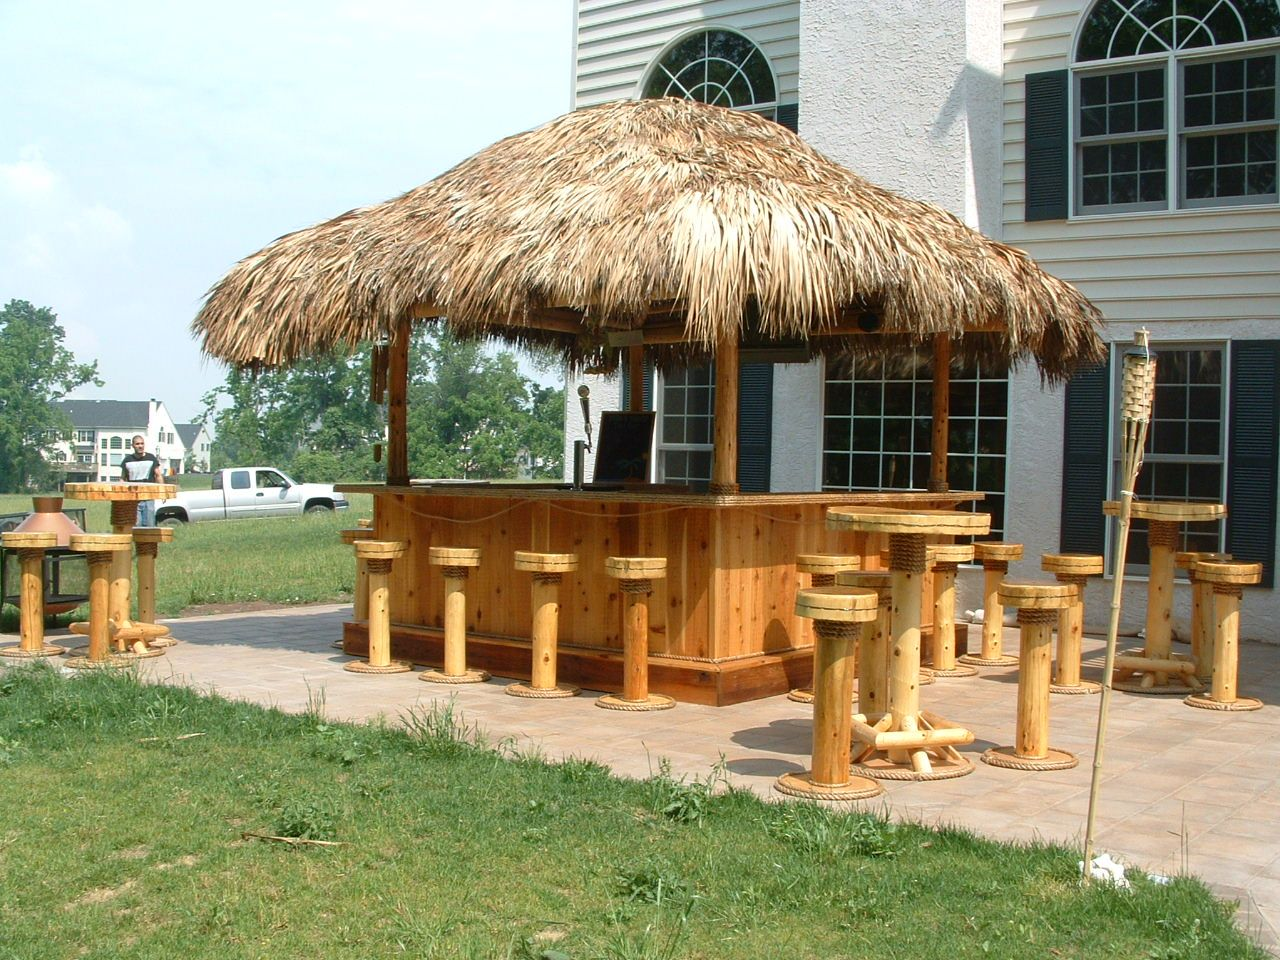 Royersford Pa 10x10 Custom Red Cedar Tiki Bar 12x12 Thatched Roof Footrest Solid Pine Upper And Lower Bar Tops Cabinets Tiki Bar Bar Sink Thatched Roof